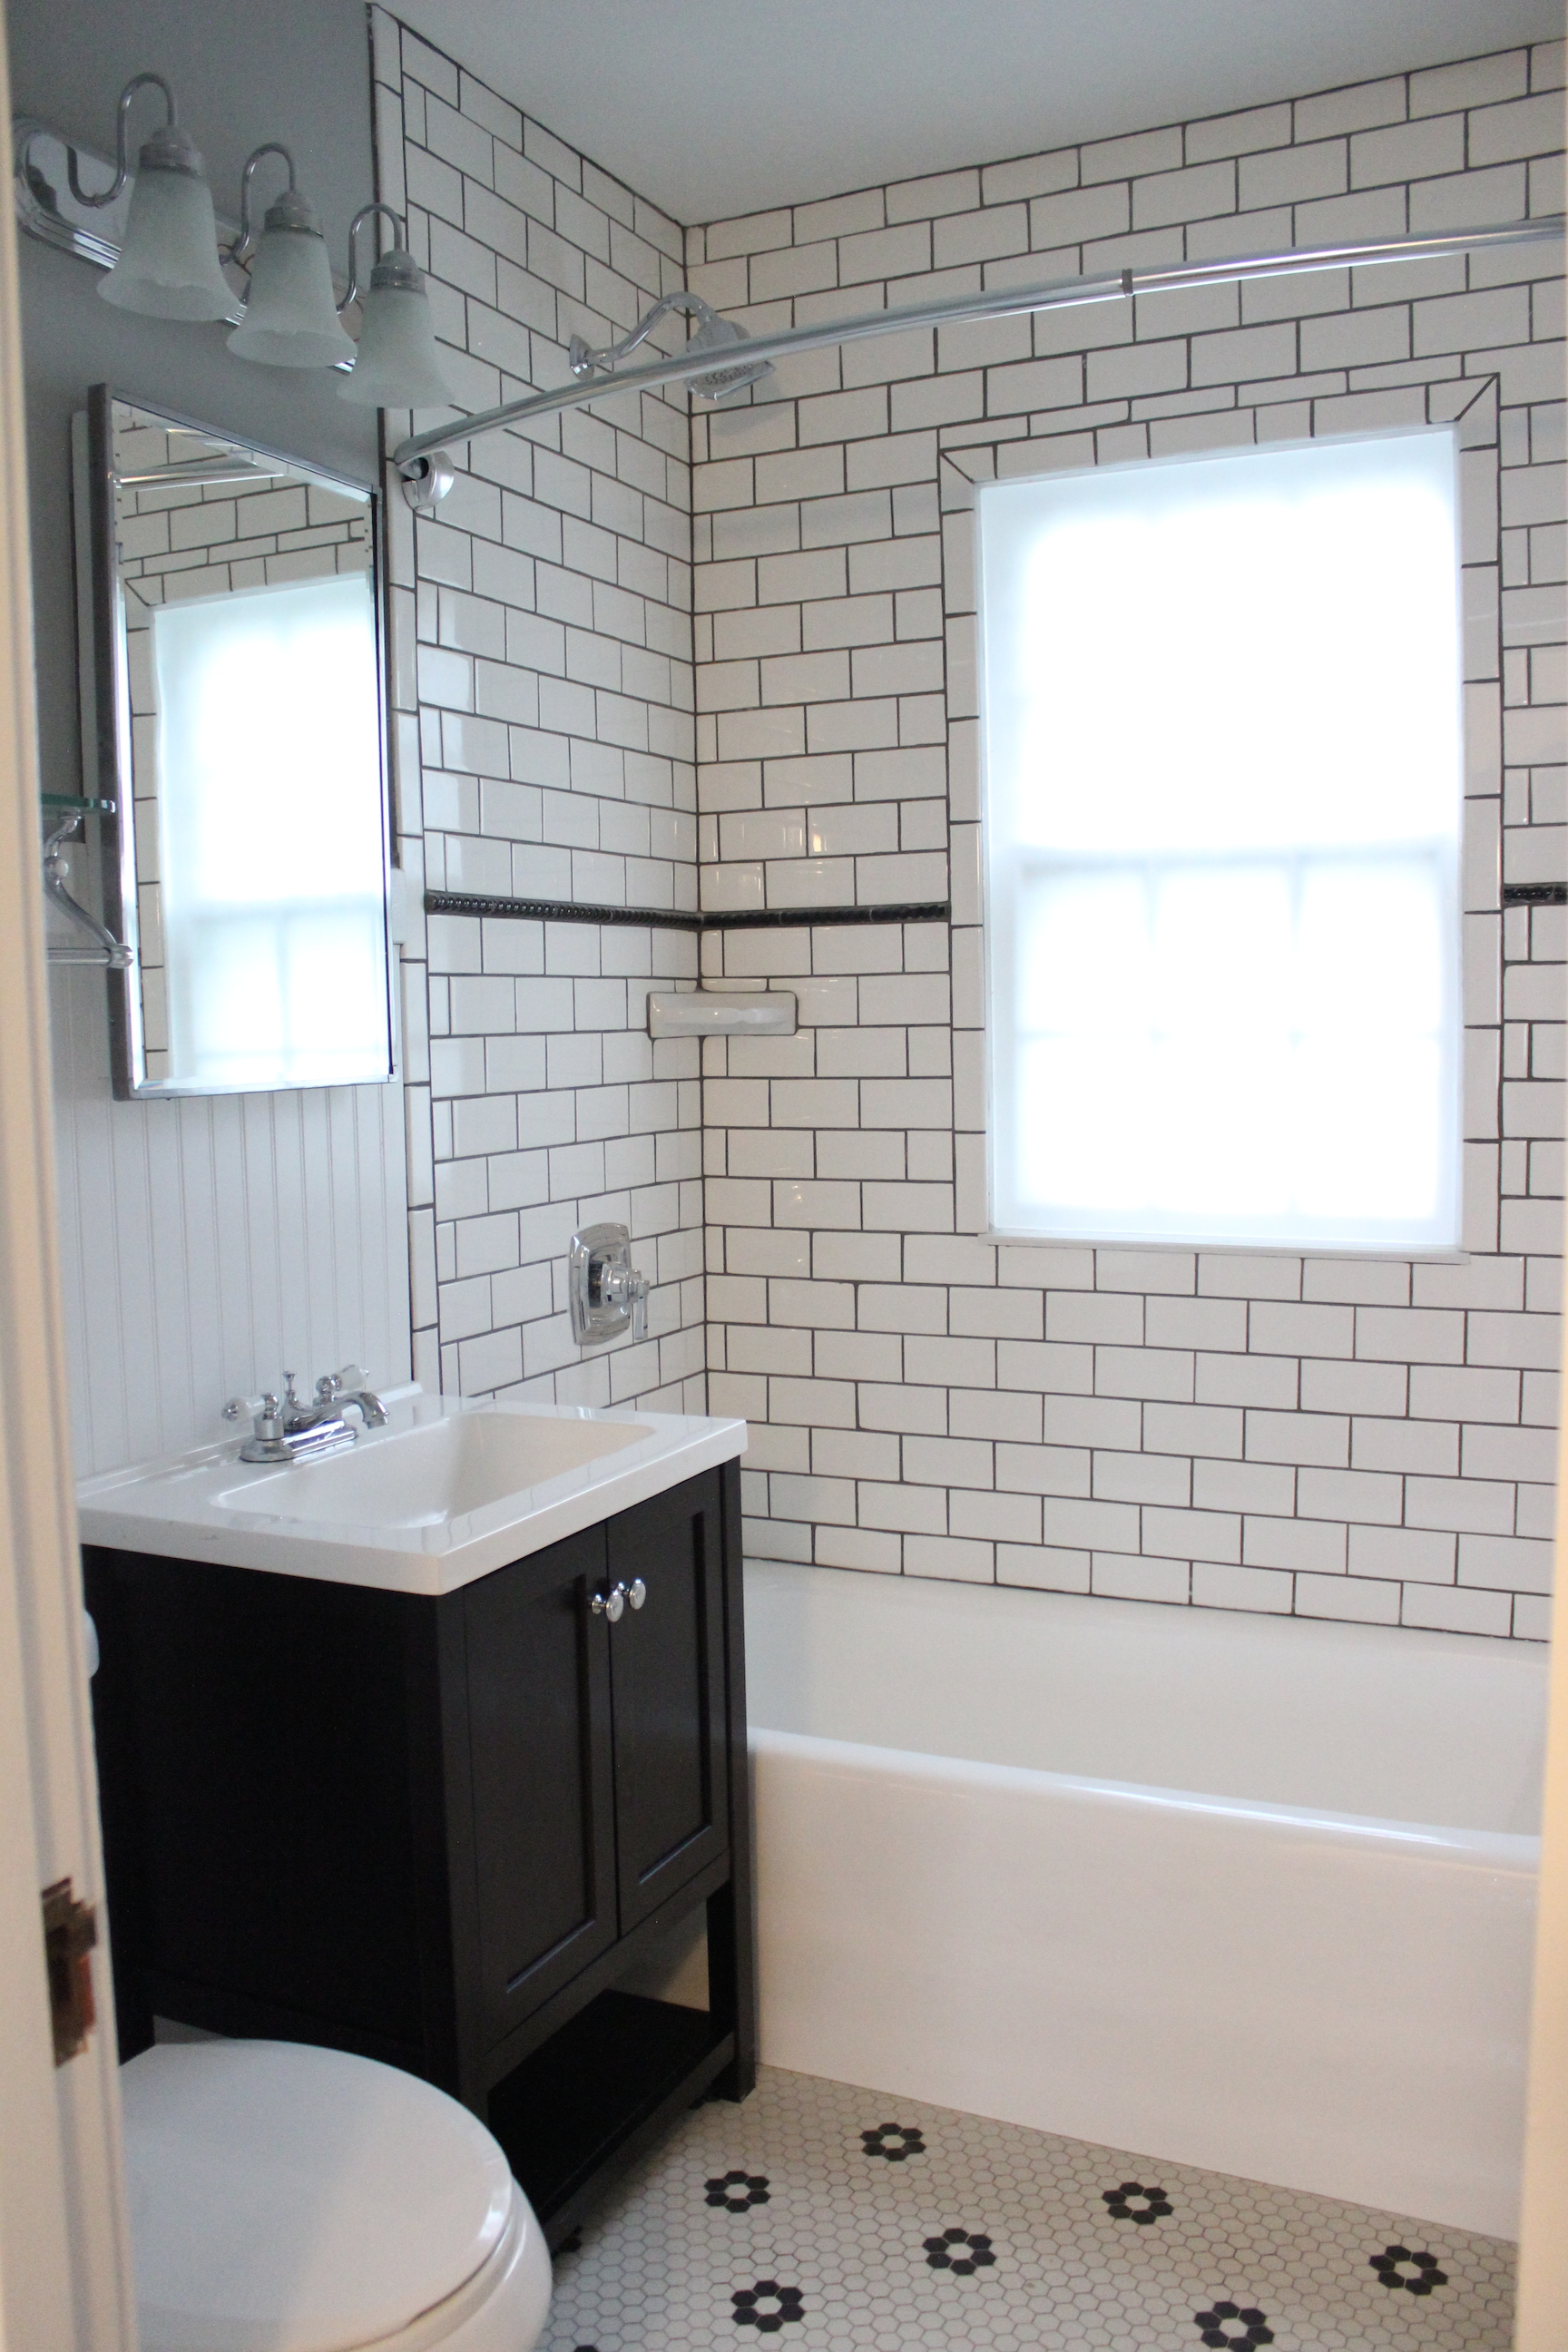 vintage style bathroom lighting. IMG_5554 Vintage Style Bathroom Lighting T